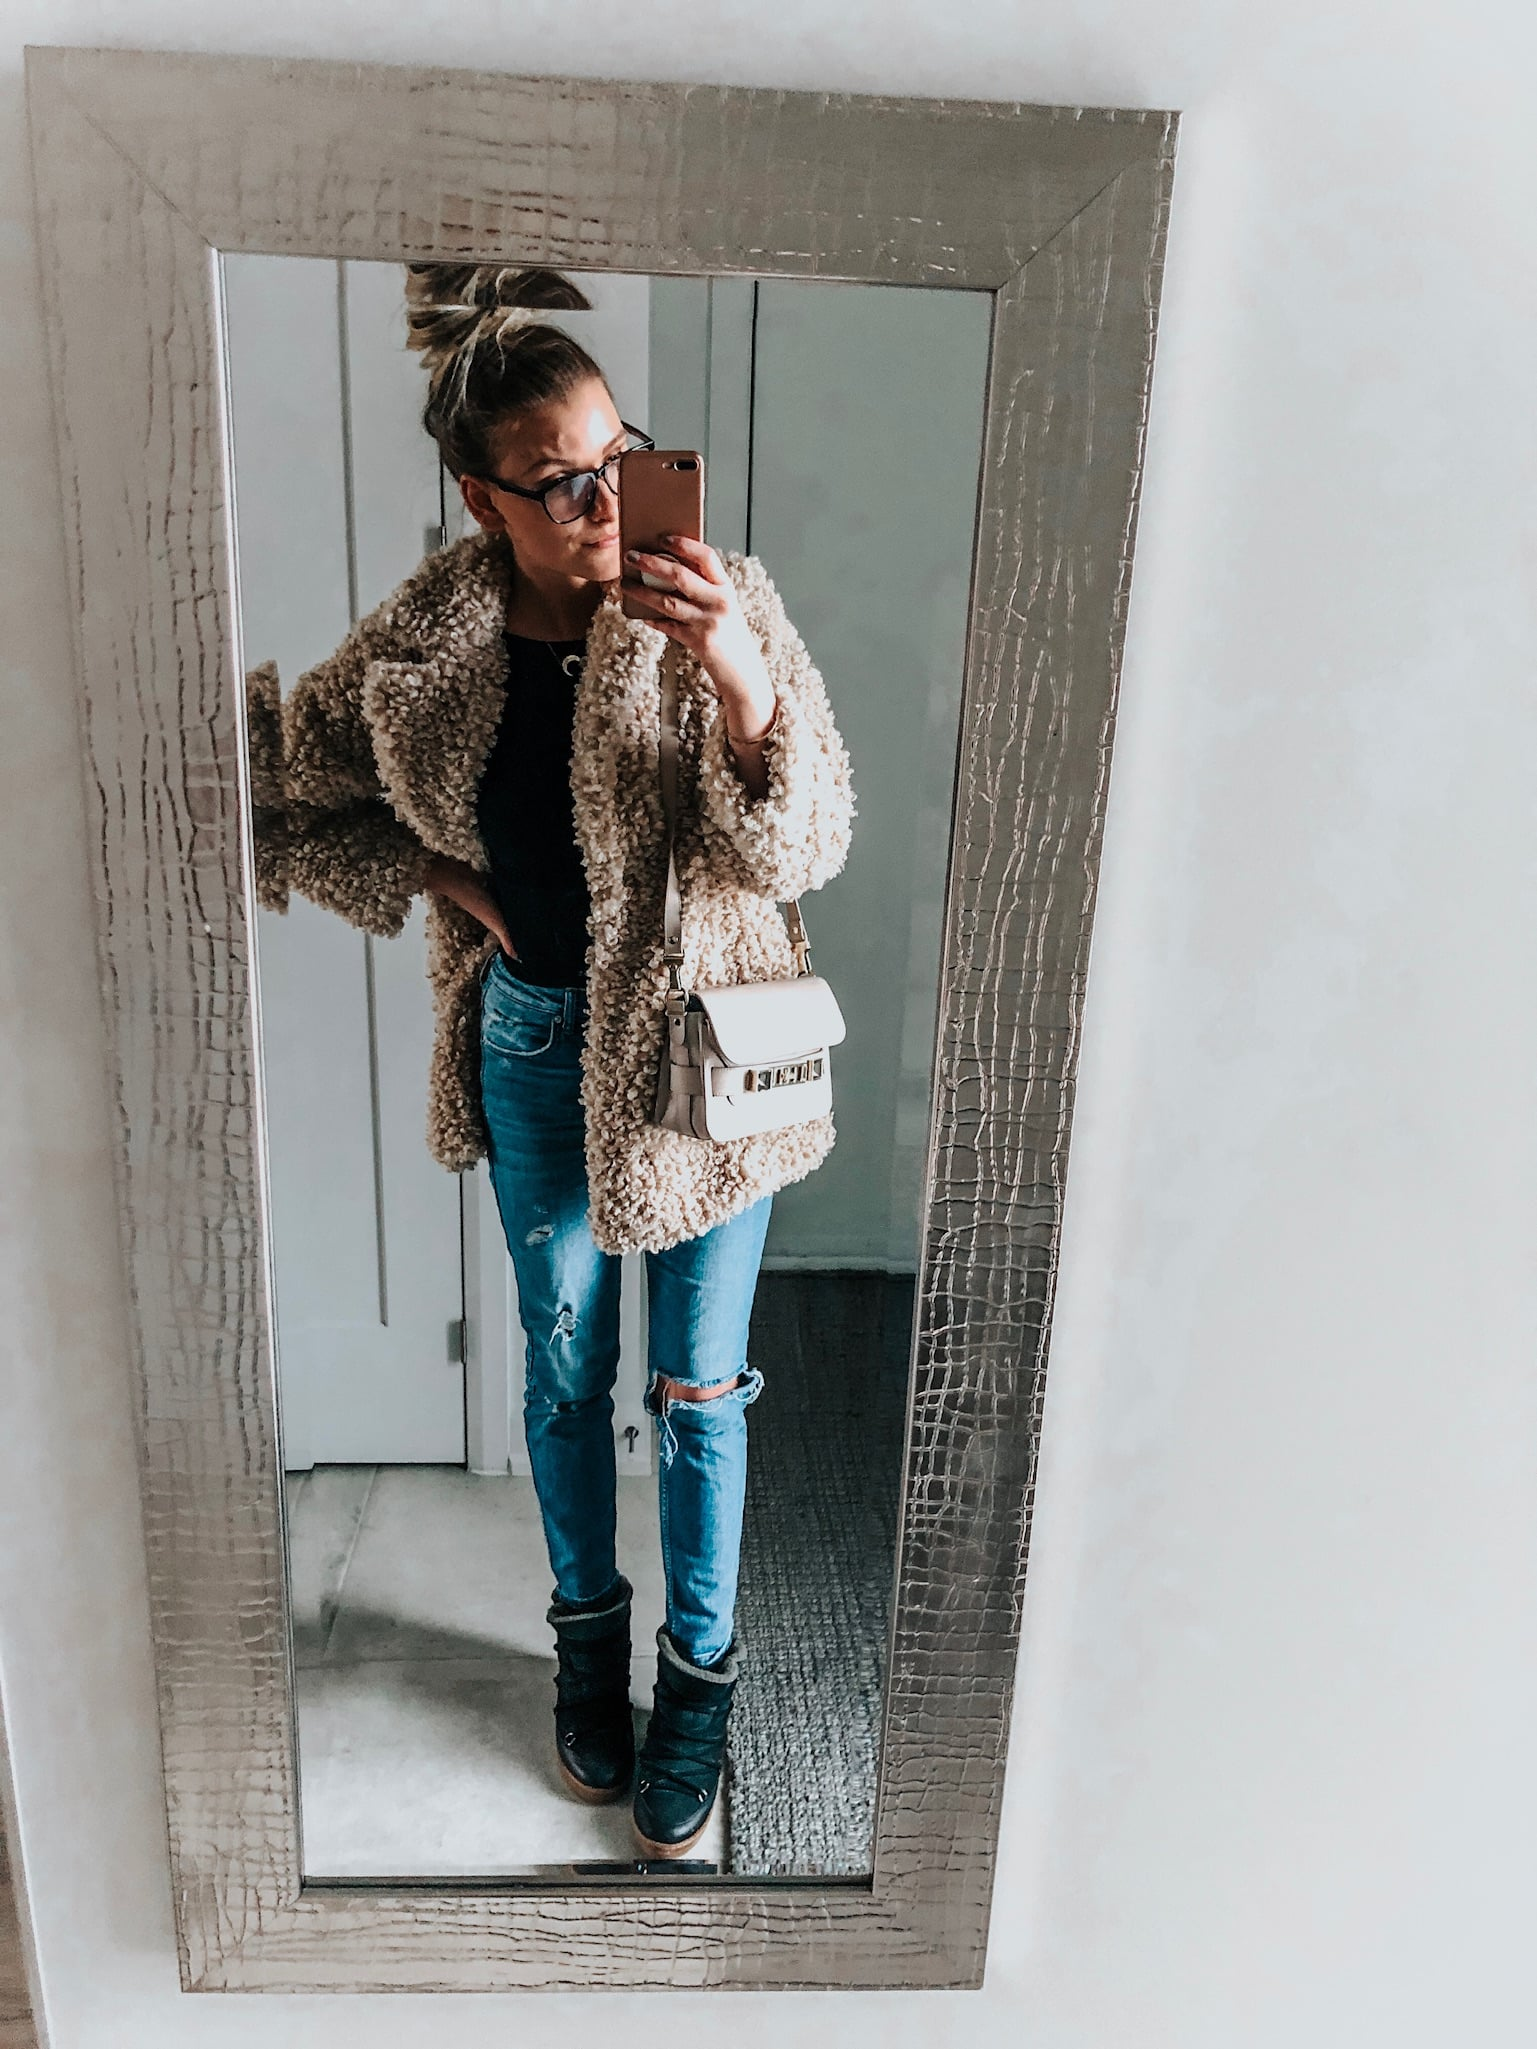 blogger wearing teddy coat and jeans